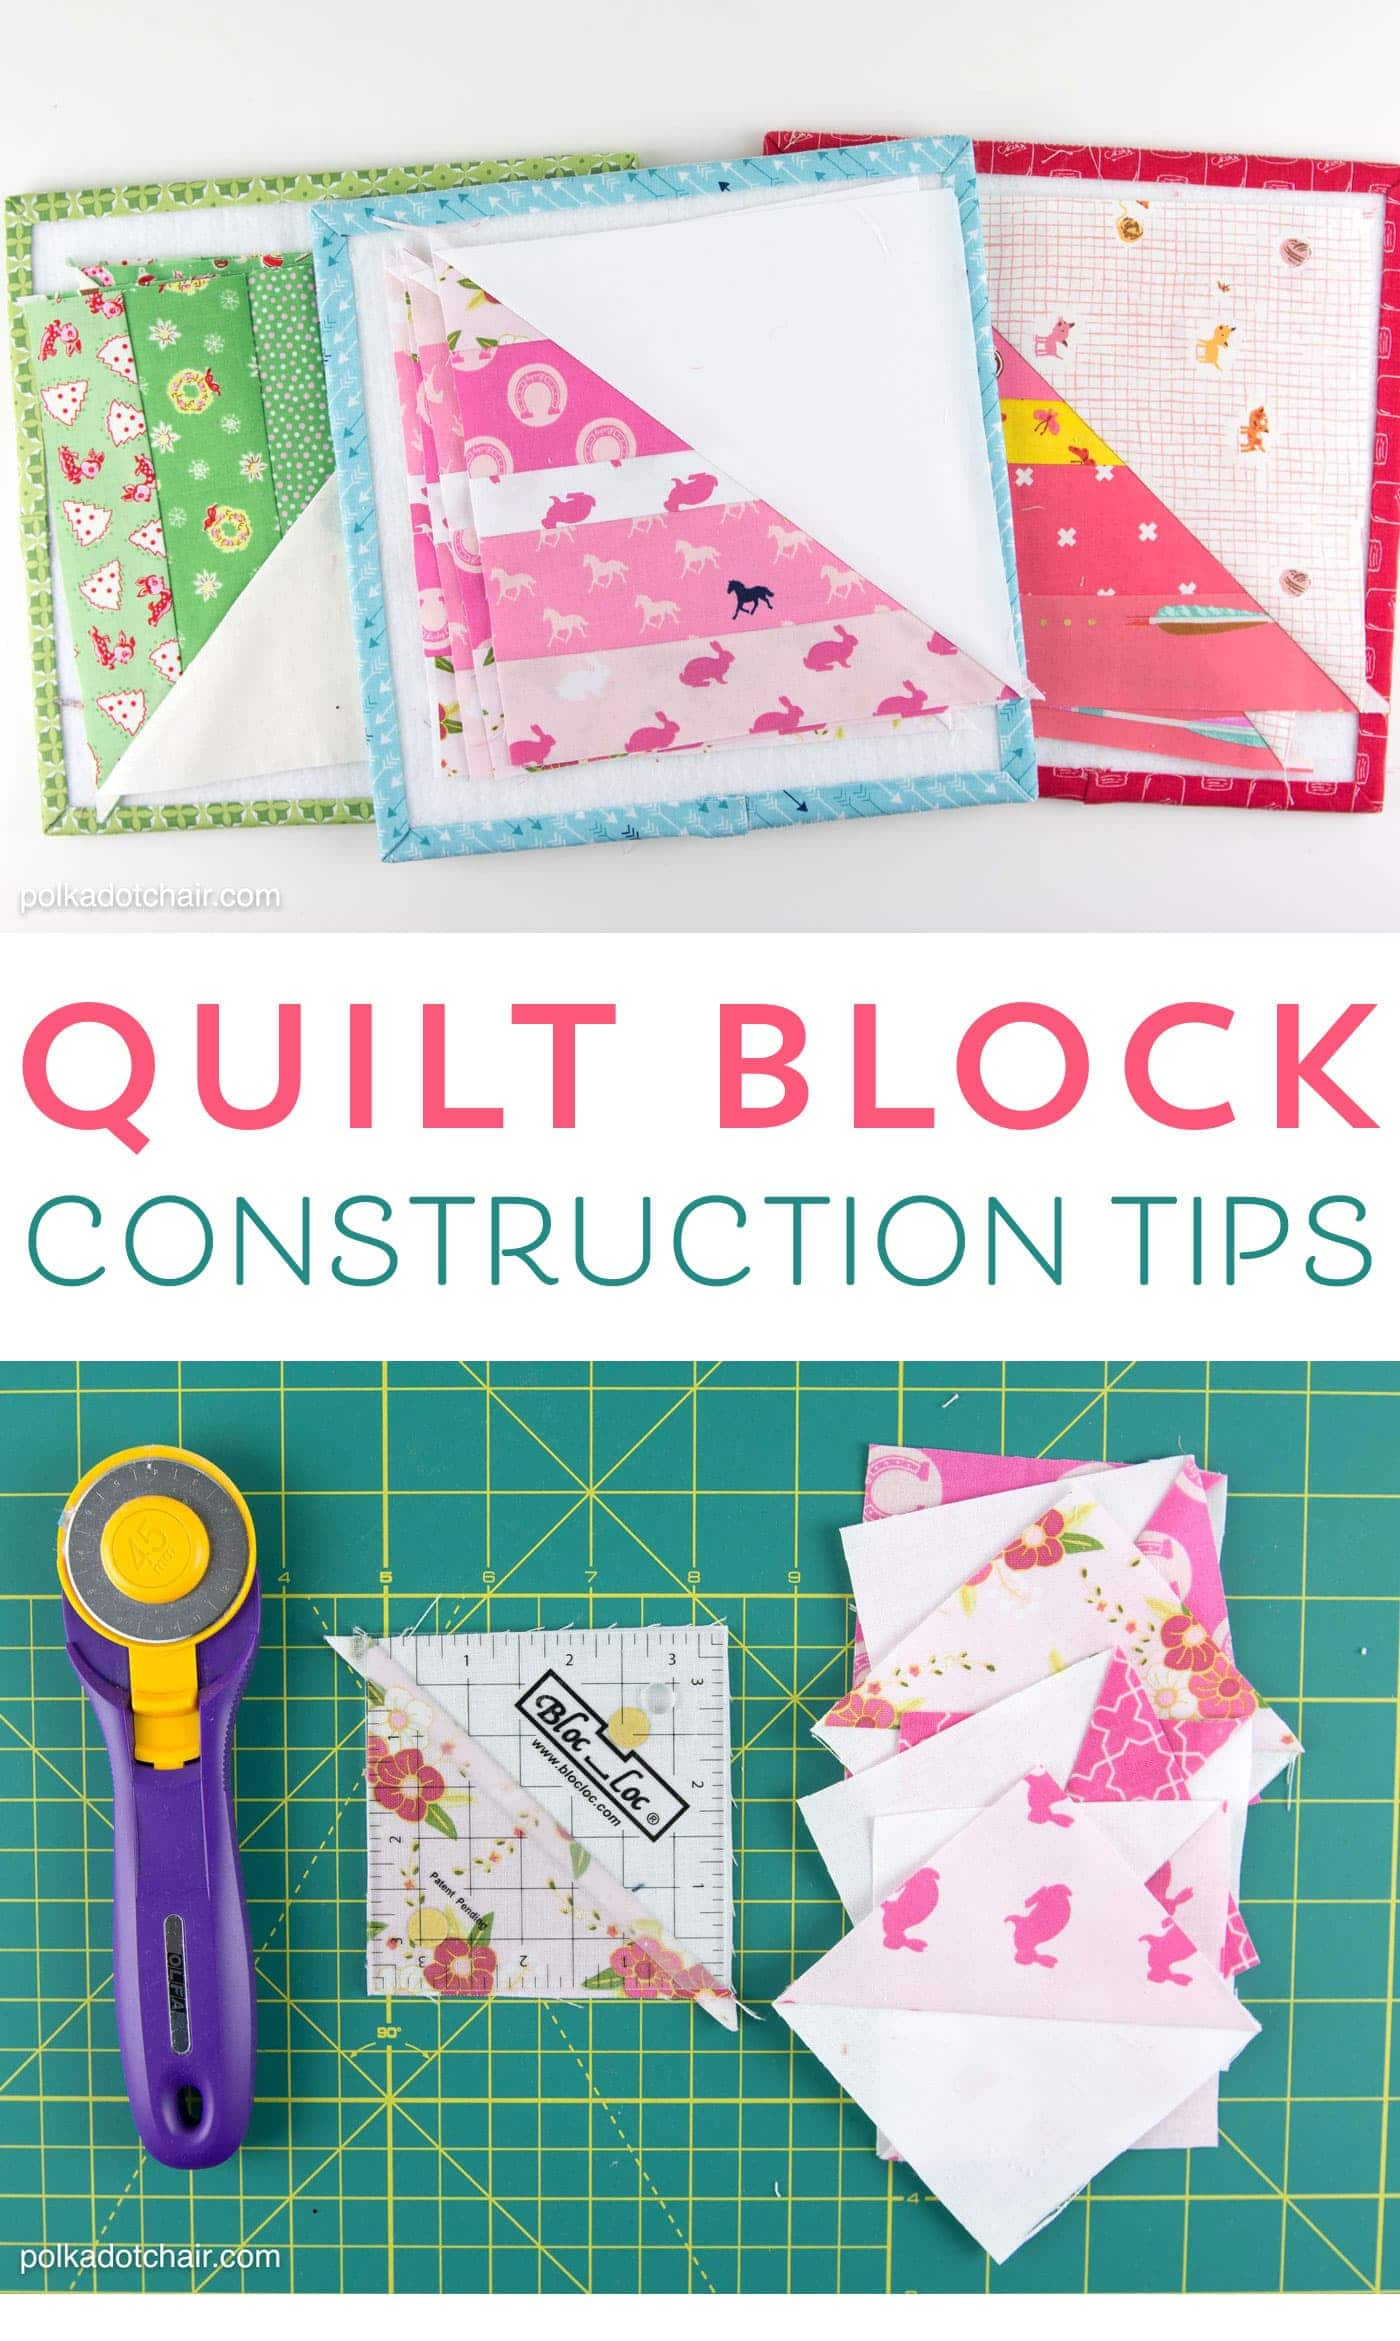 Tips and tricks to help you when you're constructing quilt blocks. Things like how to stay organized and how to trim HST blocks accurately.